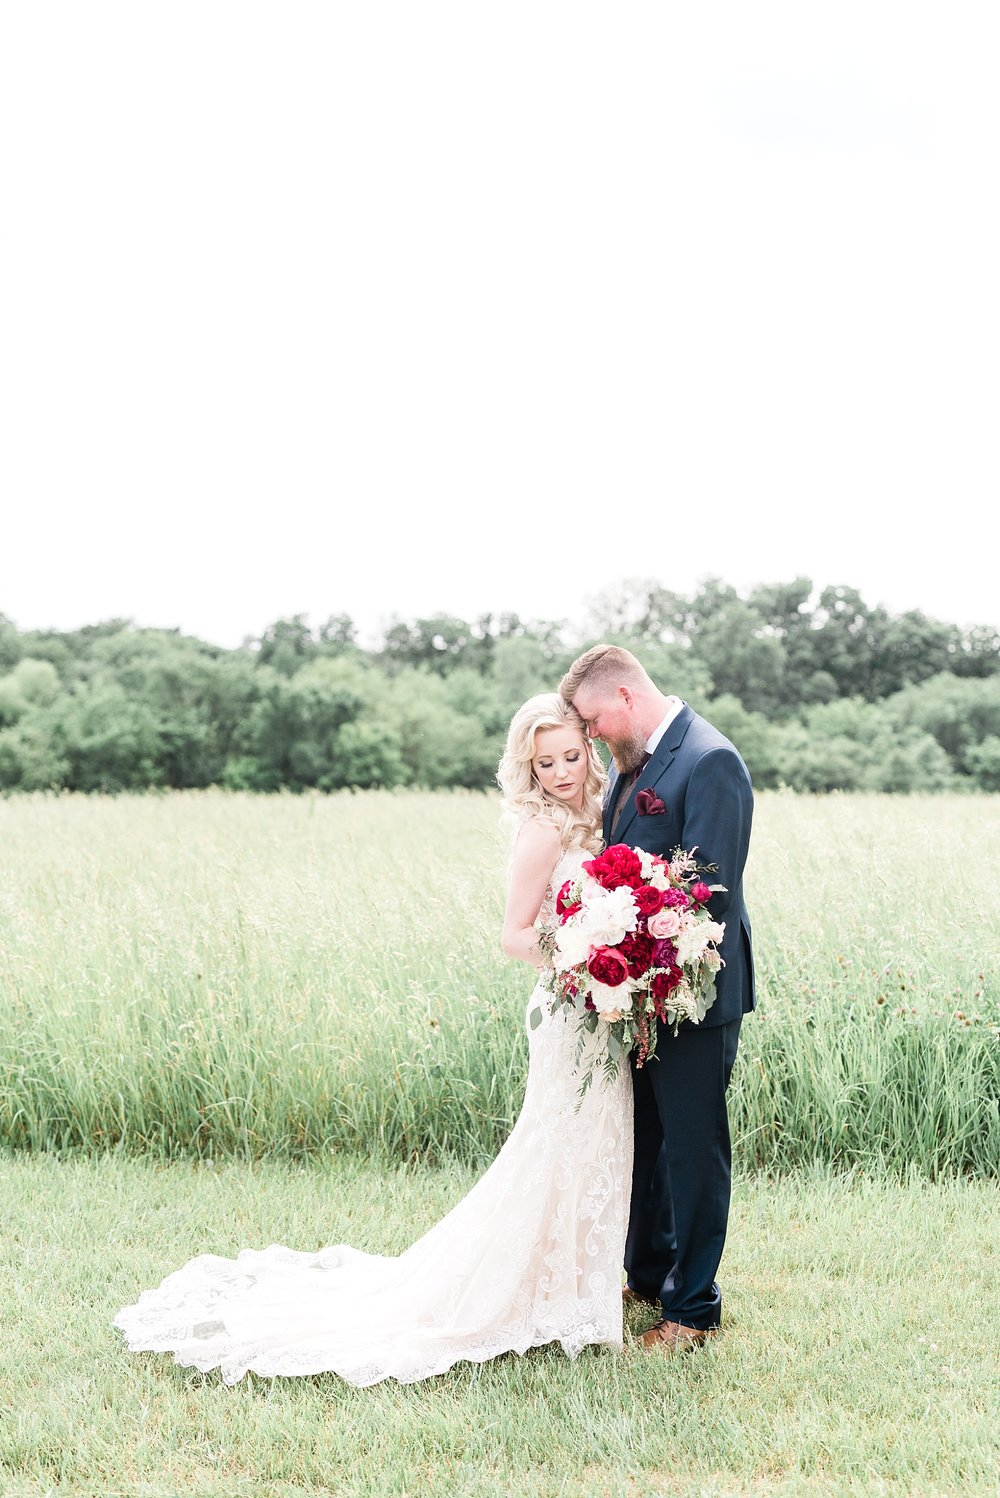 Light and Airy Spring Shabby Chic Wedding at Bessie's Barn Iowa by Kelsi Kliethermes Photography_0017.jpg